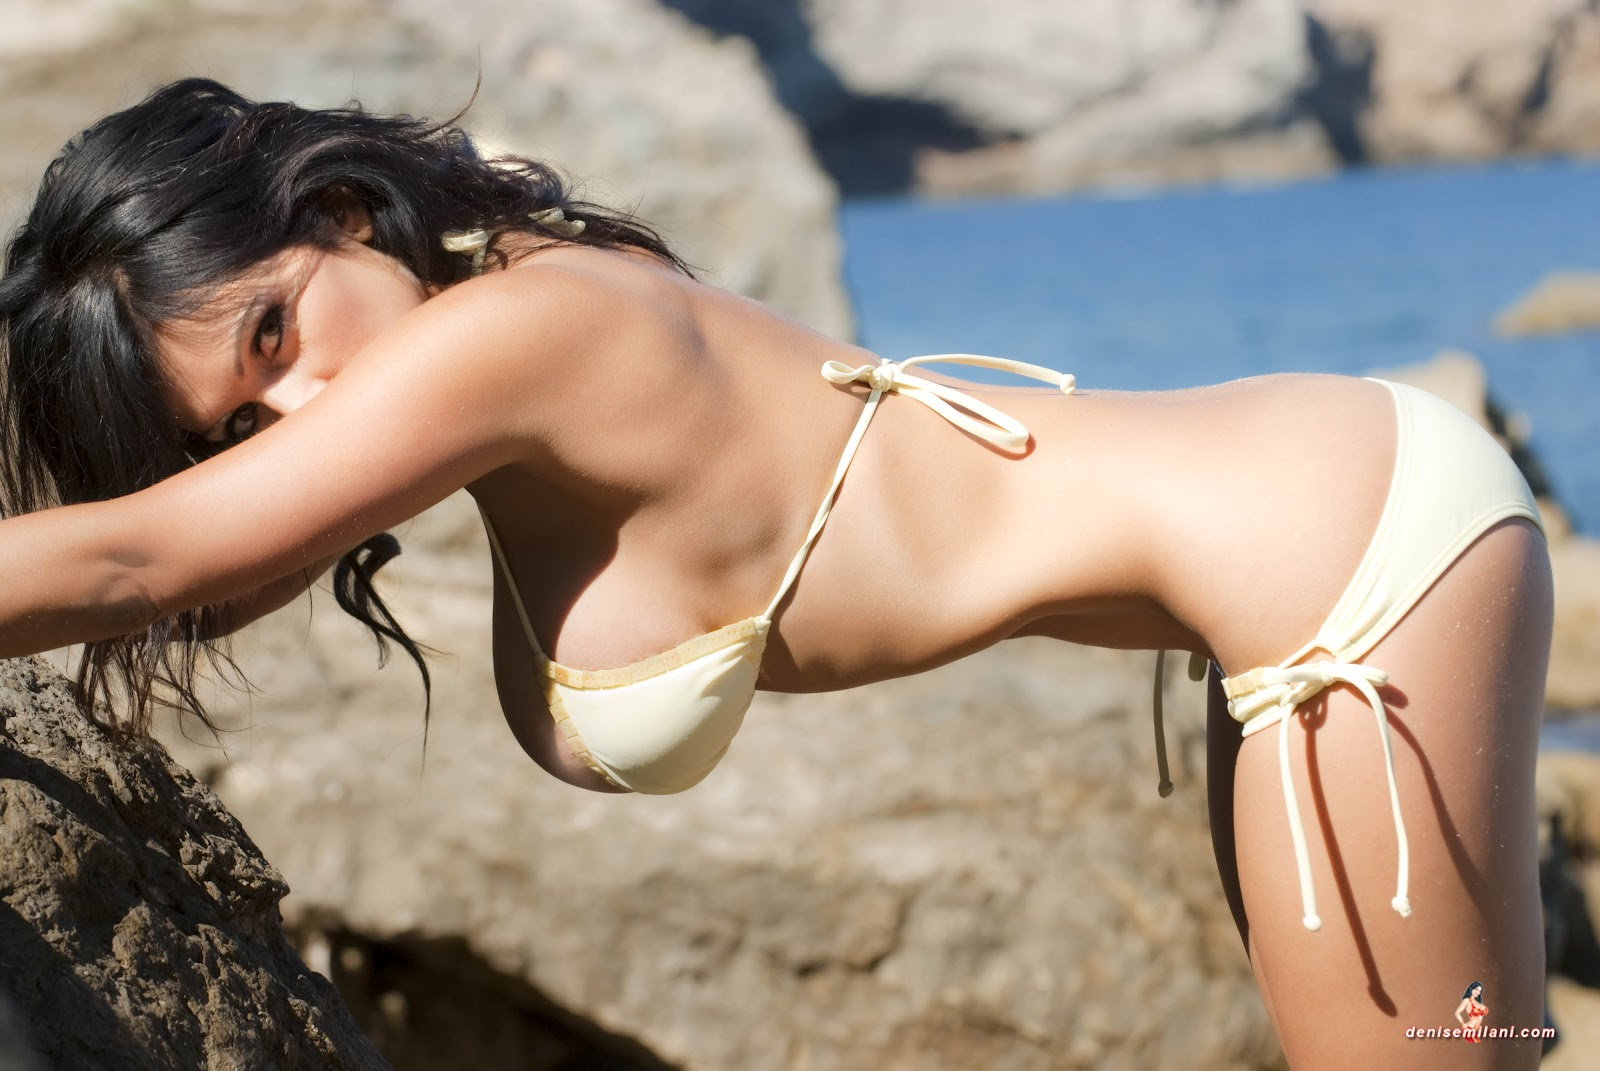 from Valentino denise milani at the beach nude